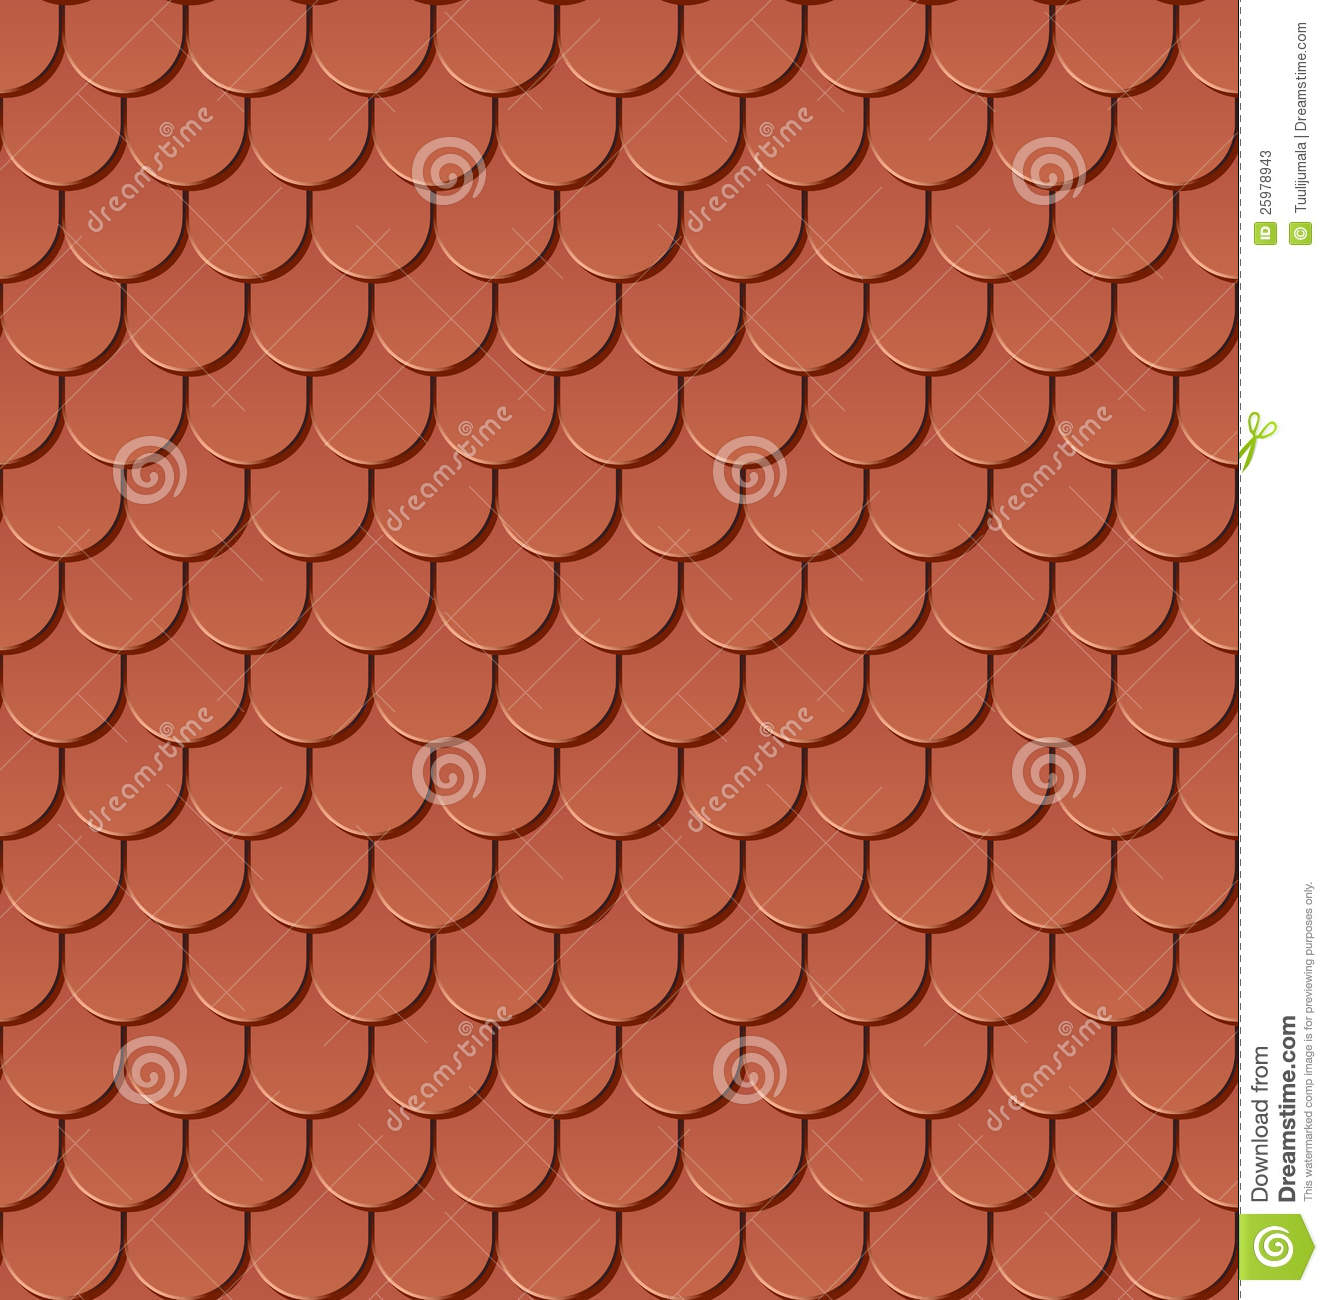 Seamless Clay Roof Tiles Stock Vector Image Of Background